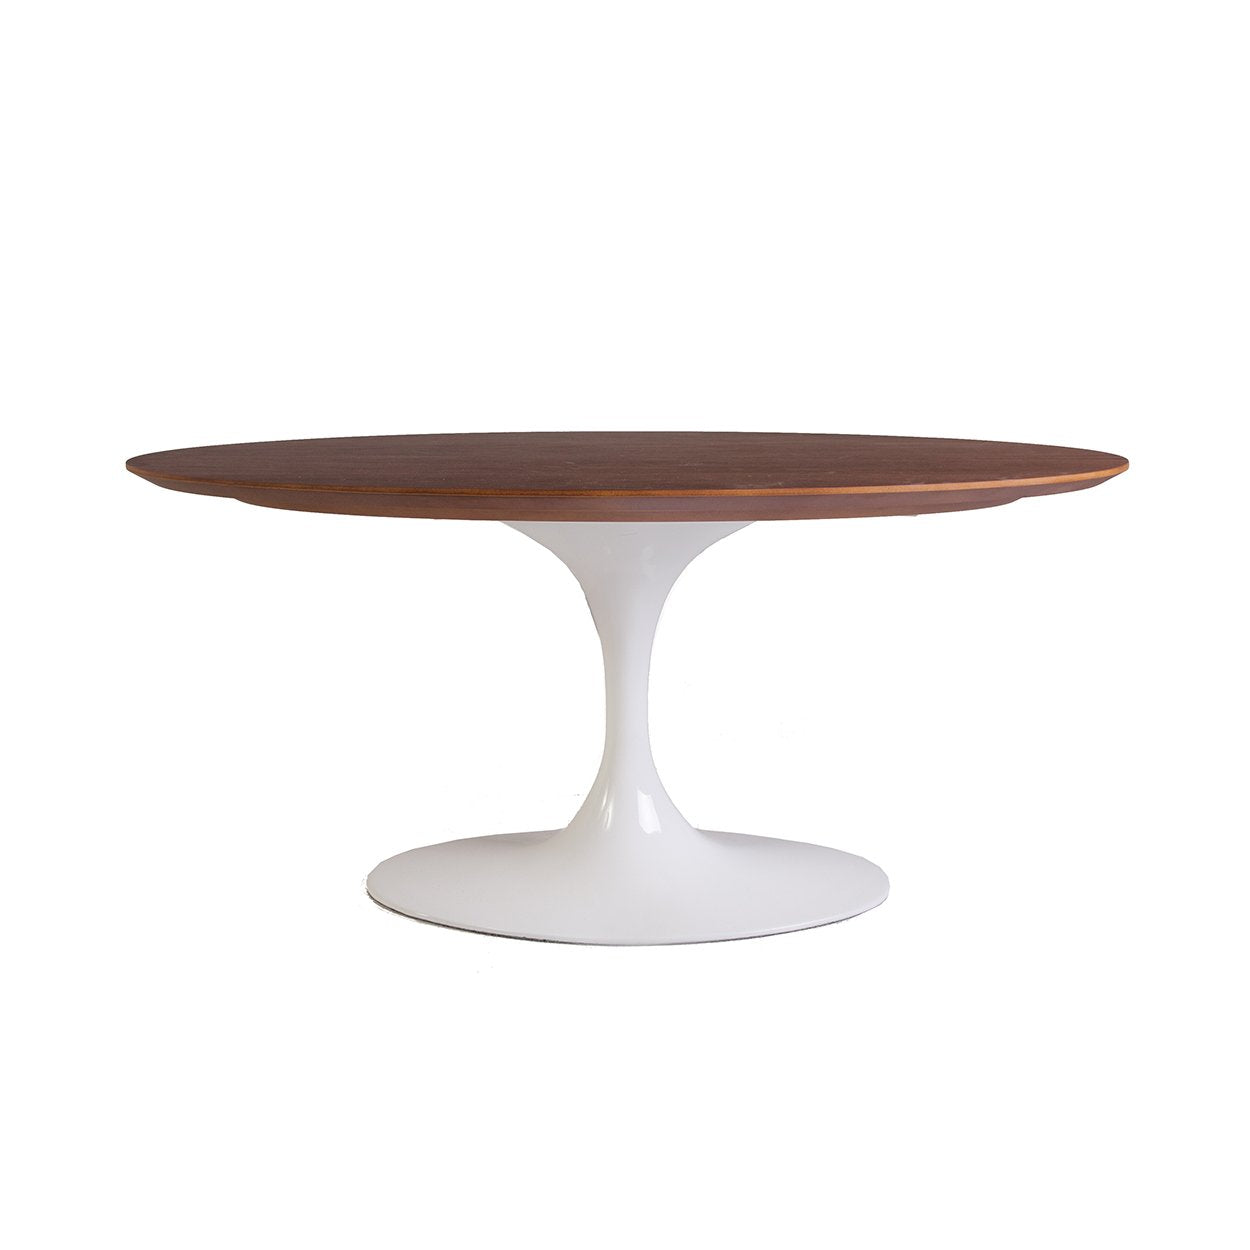 [FET0106WALNUT] The Tulip coffee table